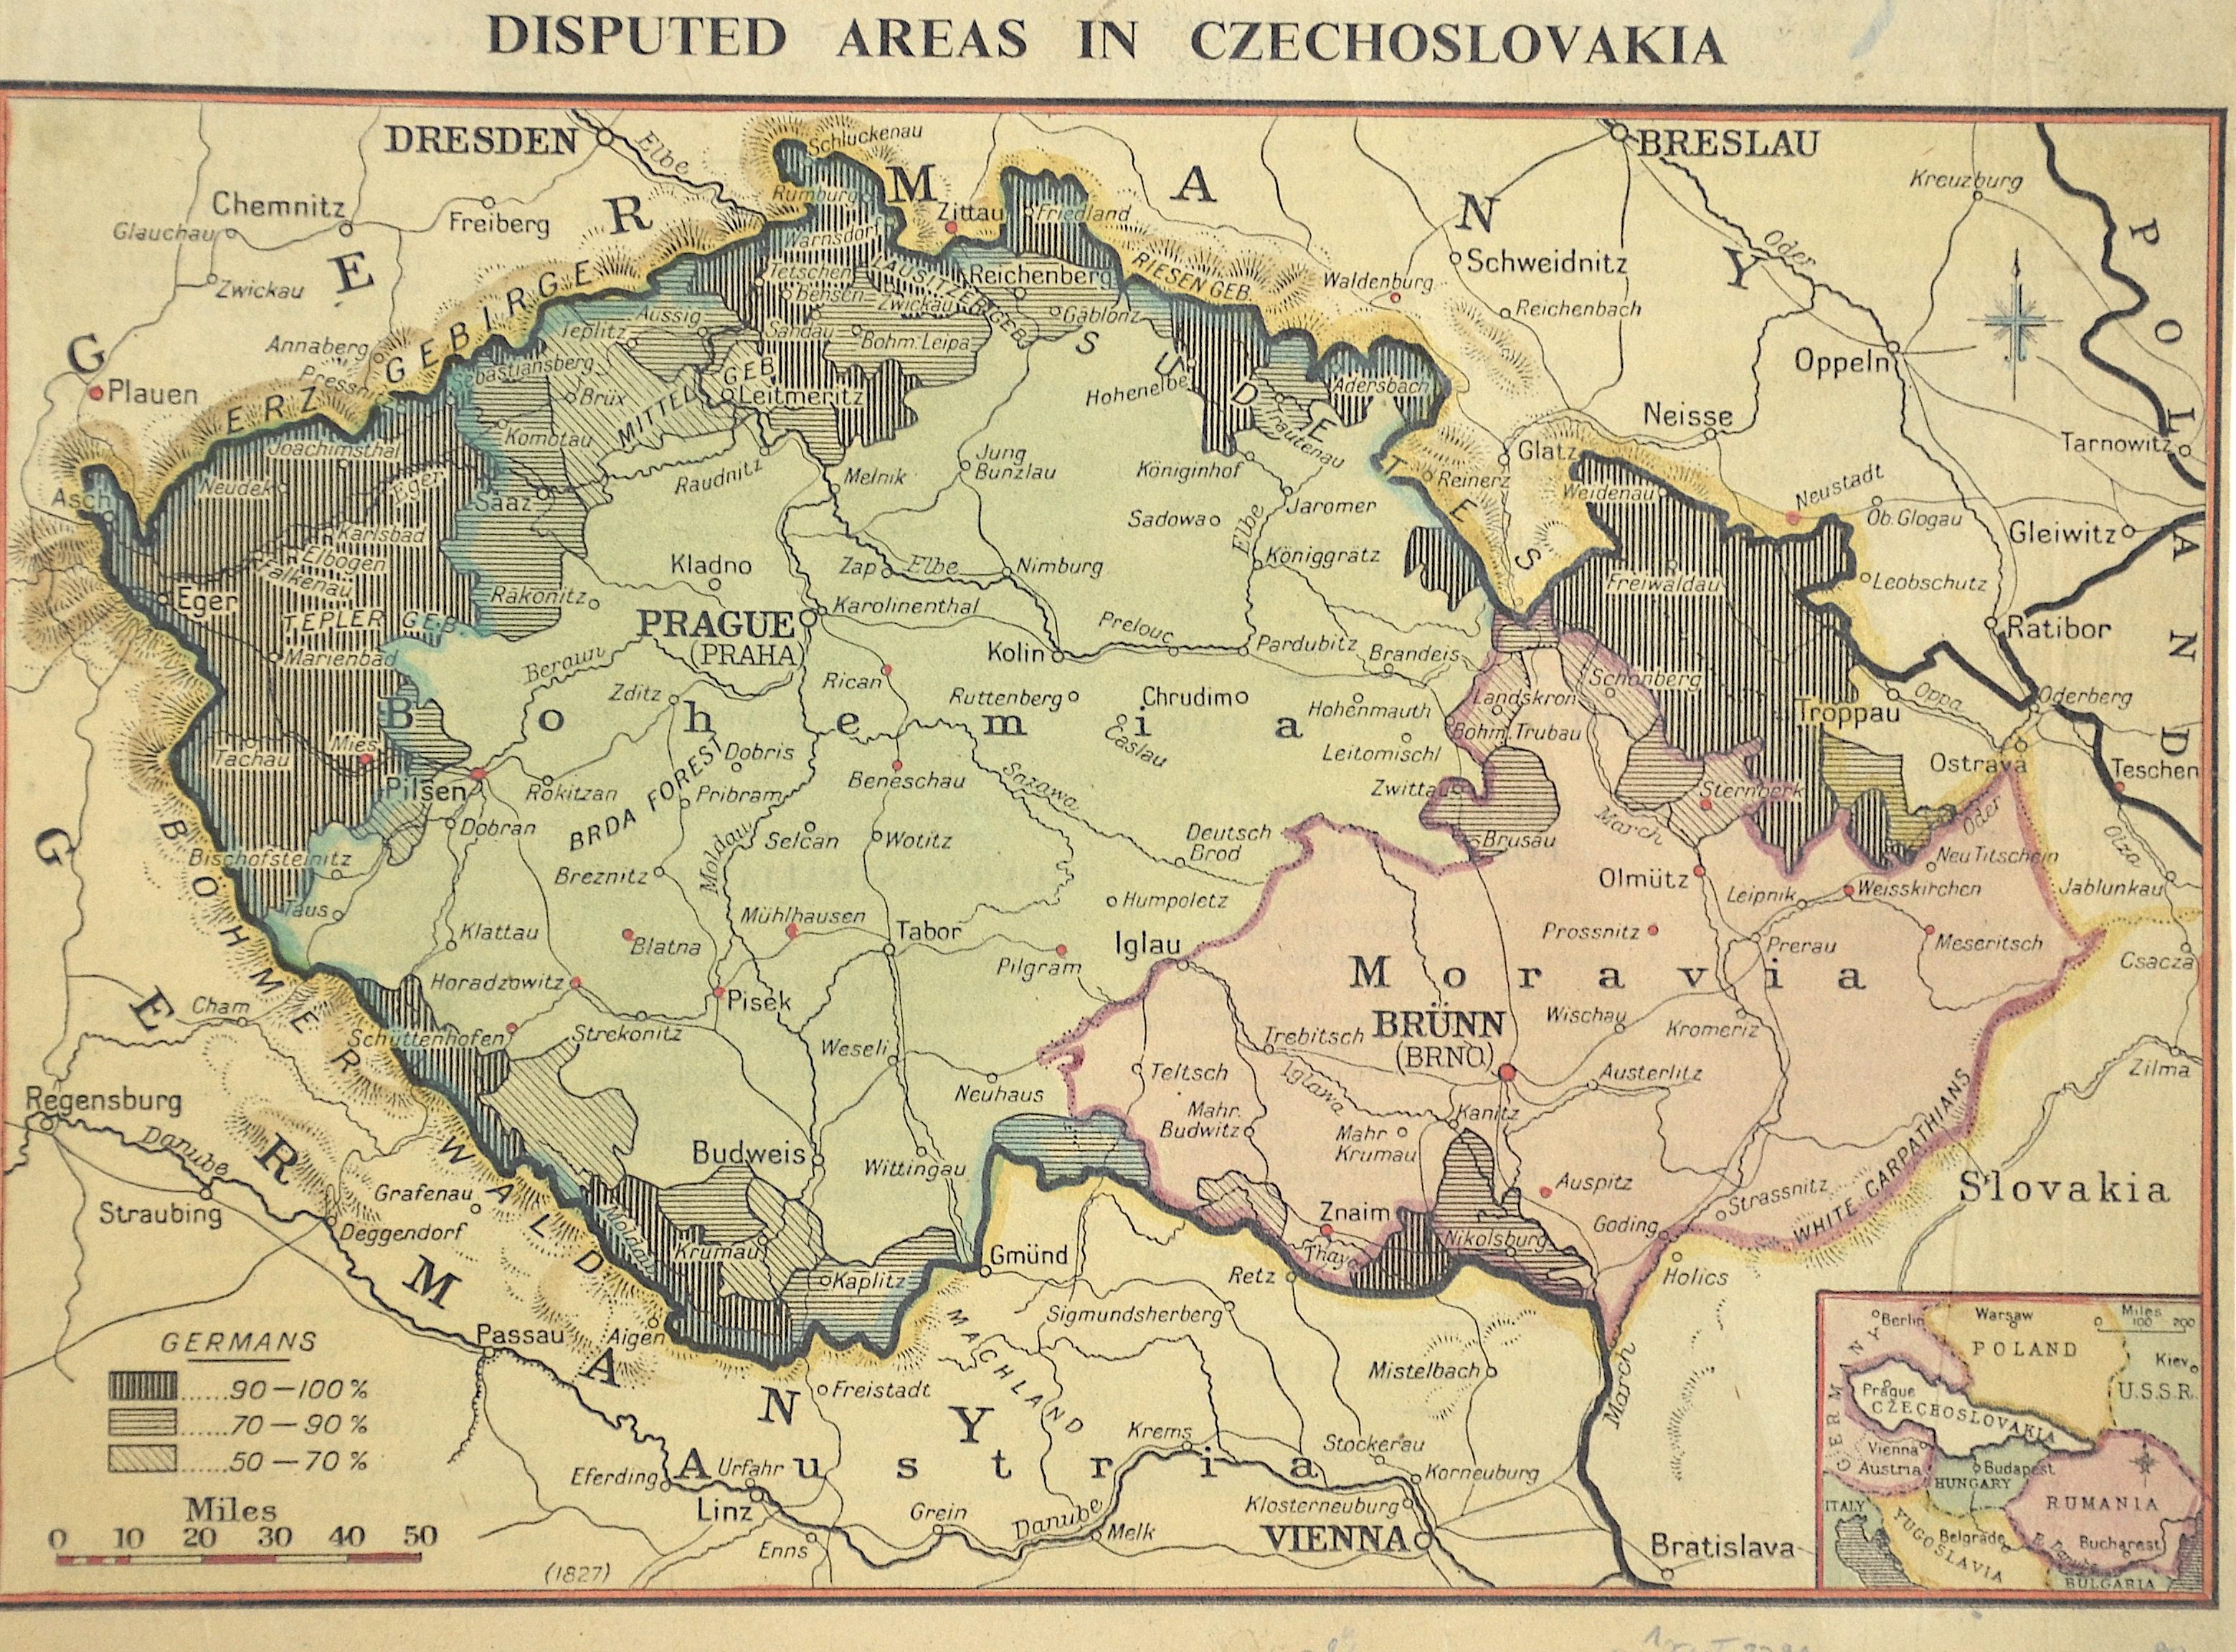 Anonymus  Disputen areas in Czechoslovakia